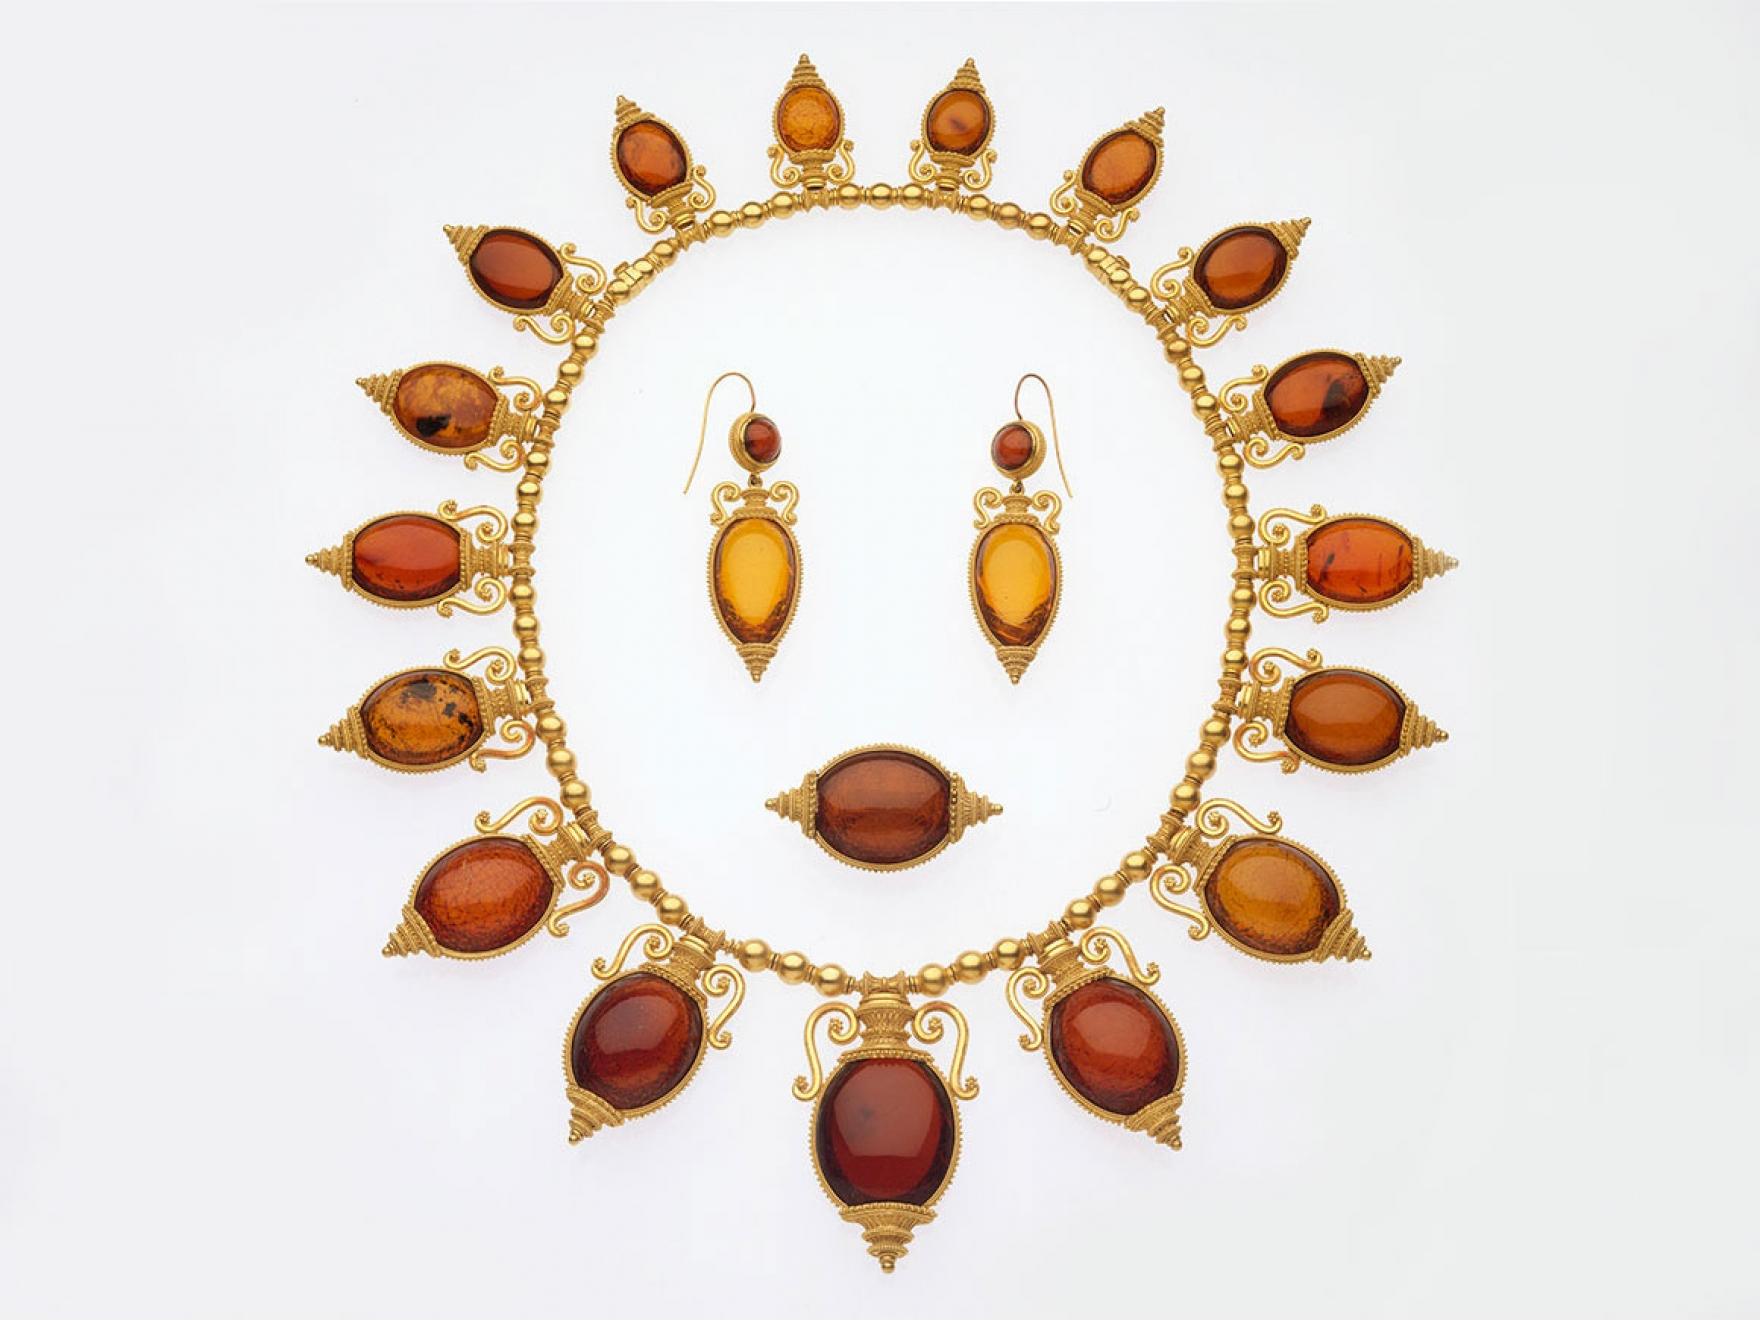 Necklace, brooch, and earrings in the archaeological revival style, possibly by Castellani, made of gold and amber.